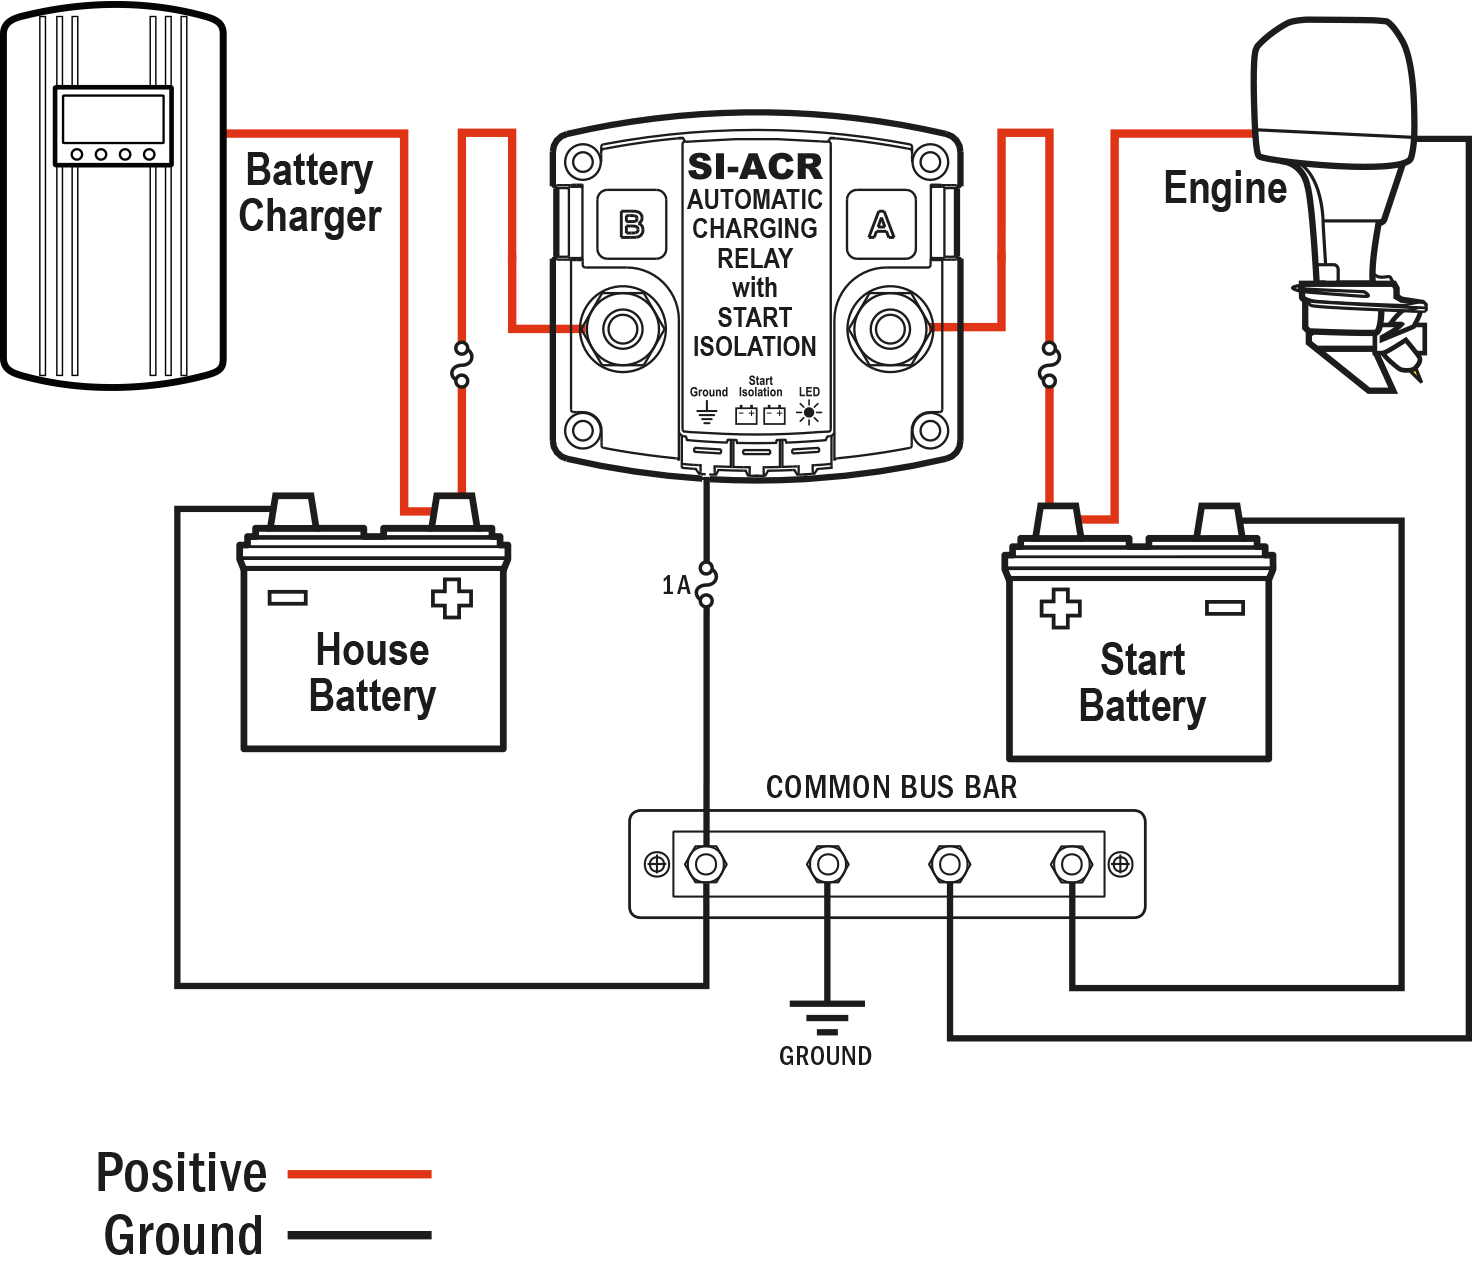 7610QuickInstall w BatteryCharger si acr automatic charging relay 12 24v dc 120a blue sea systems promariner battery isolator wiring diagram at soozxer.org